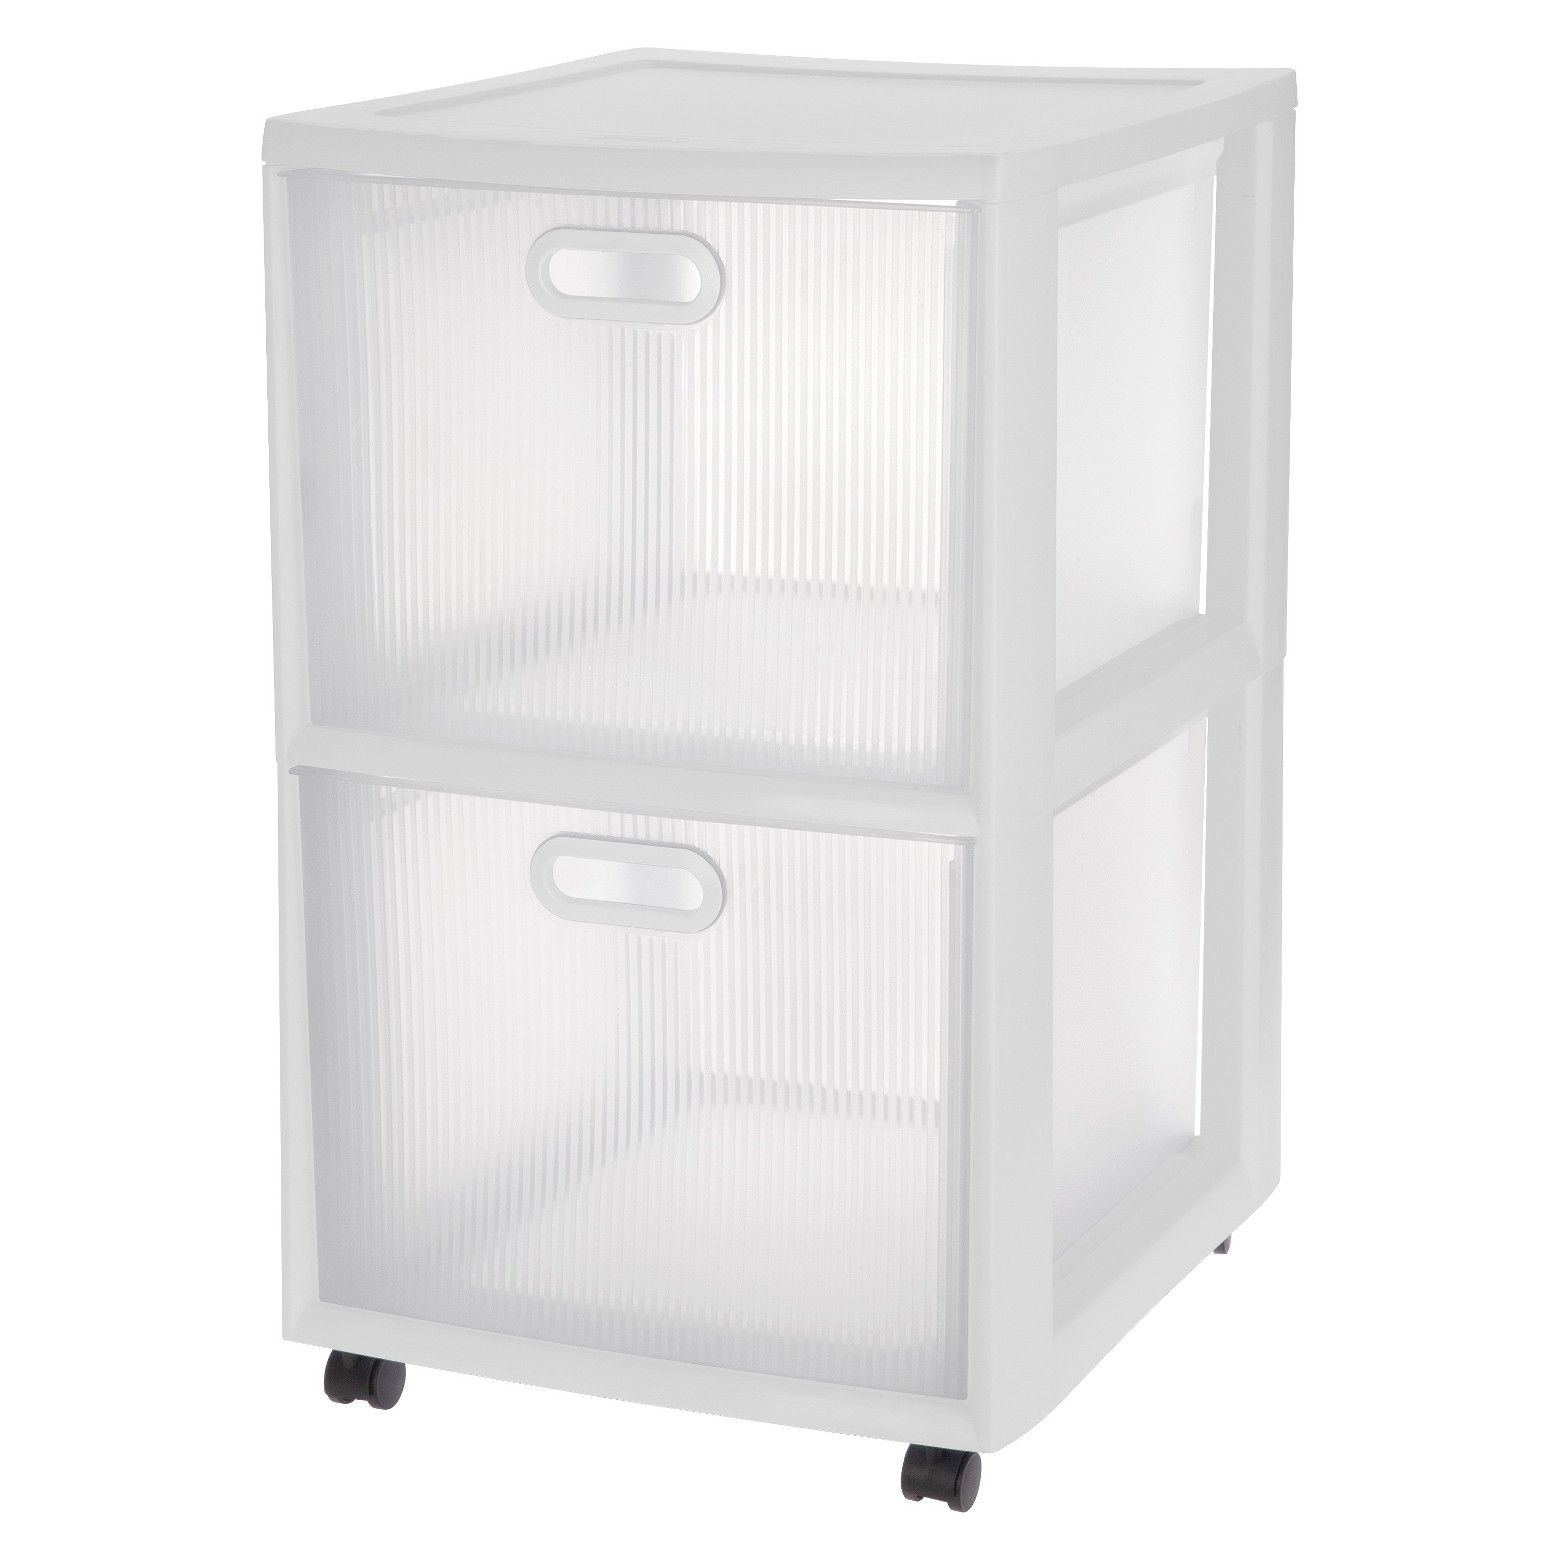 x in decoration design storage size drawers rubbermaid drawer cart gallery with home